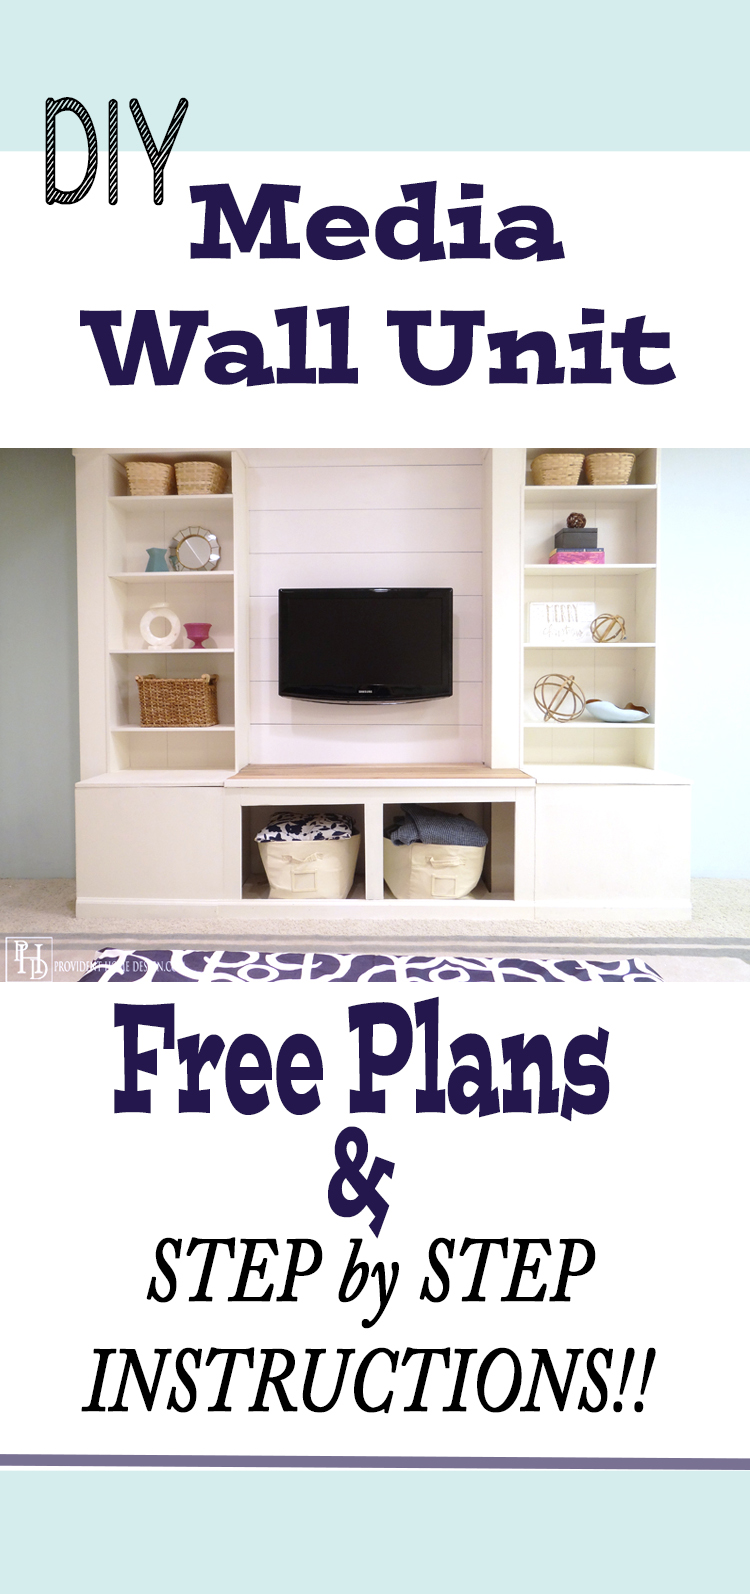 http://providenthomedesign.com/wp-content/uploads/2016/04/How-to-Build-a-Media-Wall-Unit-with-Storage.jpg